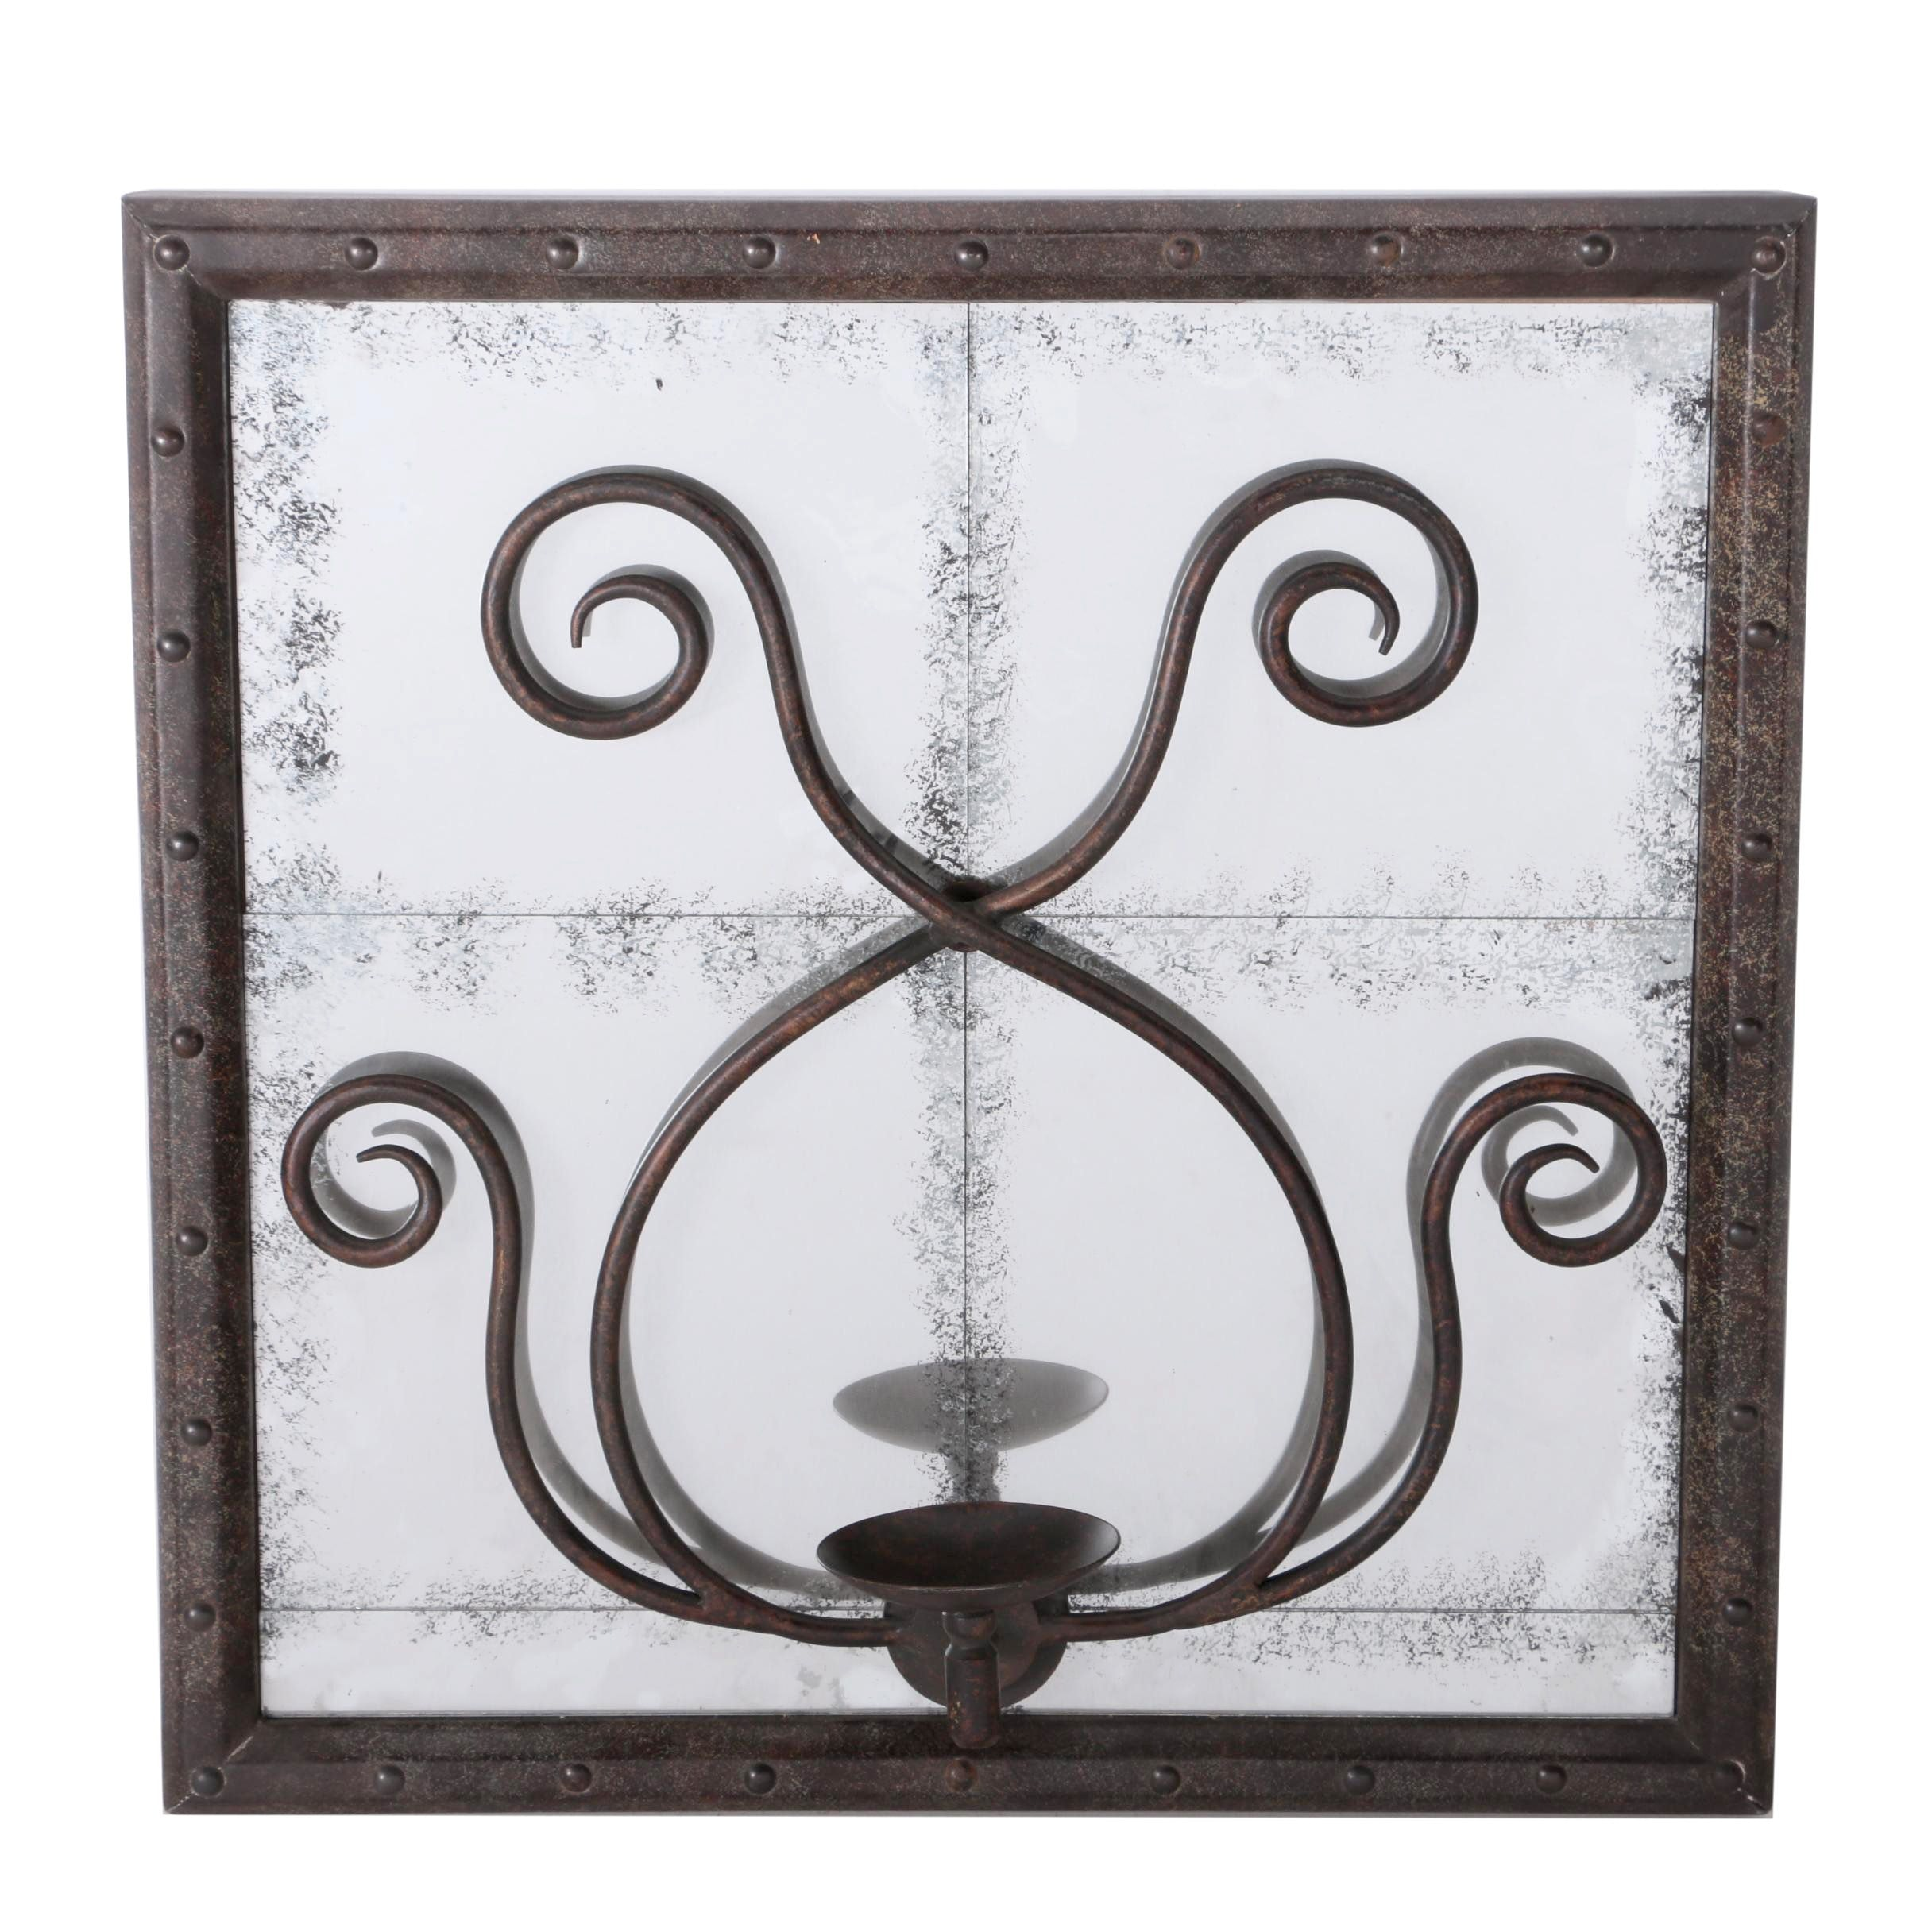 Framed Mirror Candle Sconce